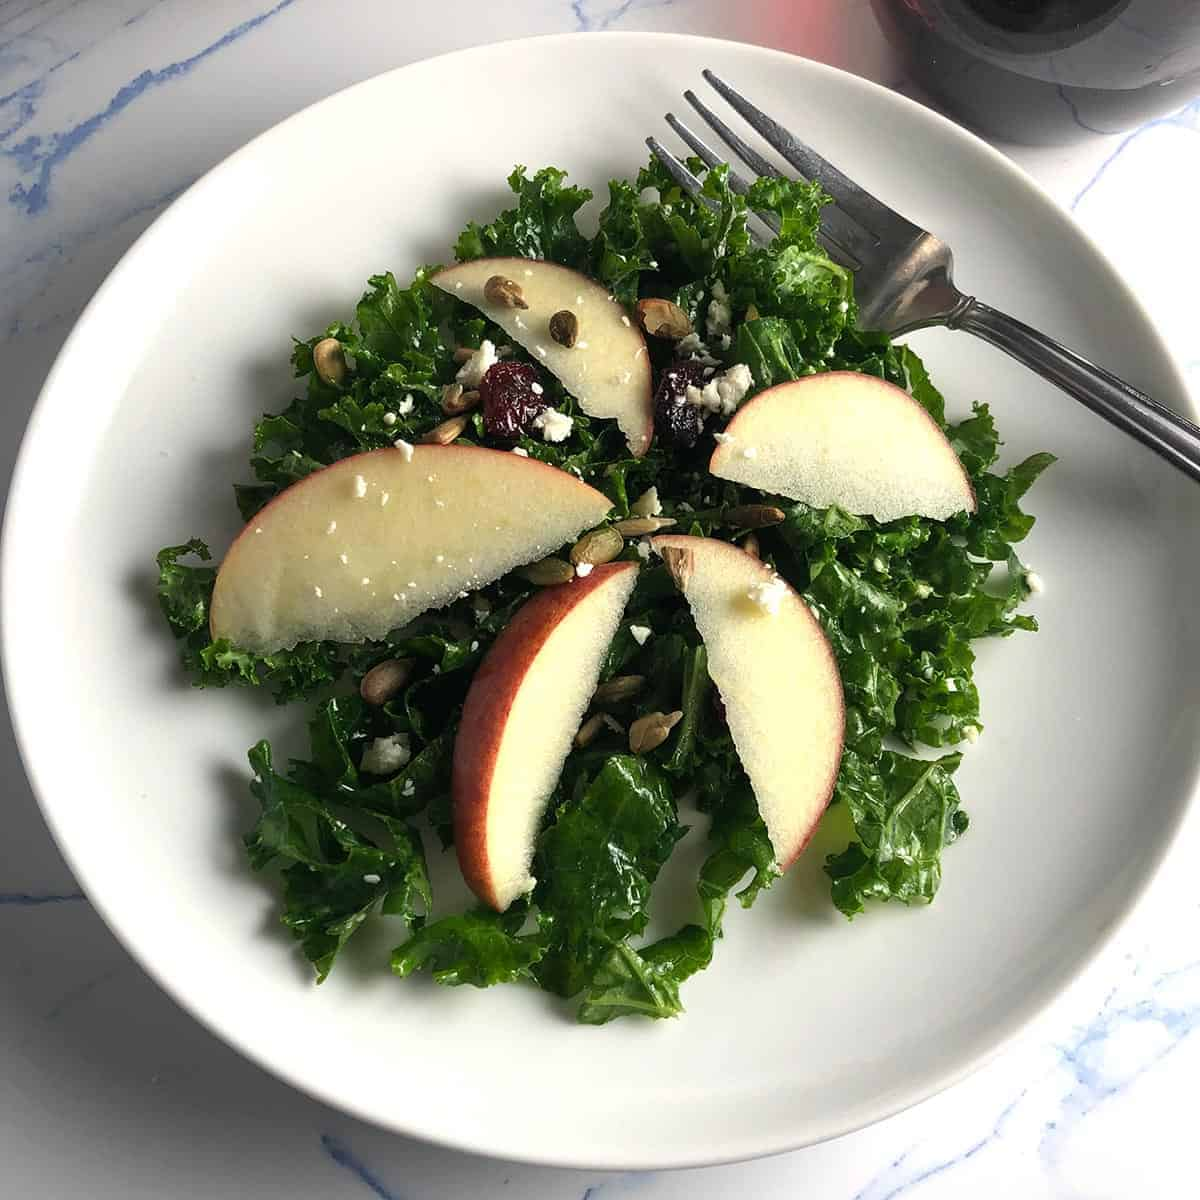 kale and apple salad served on a white plate.